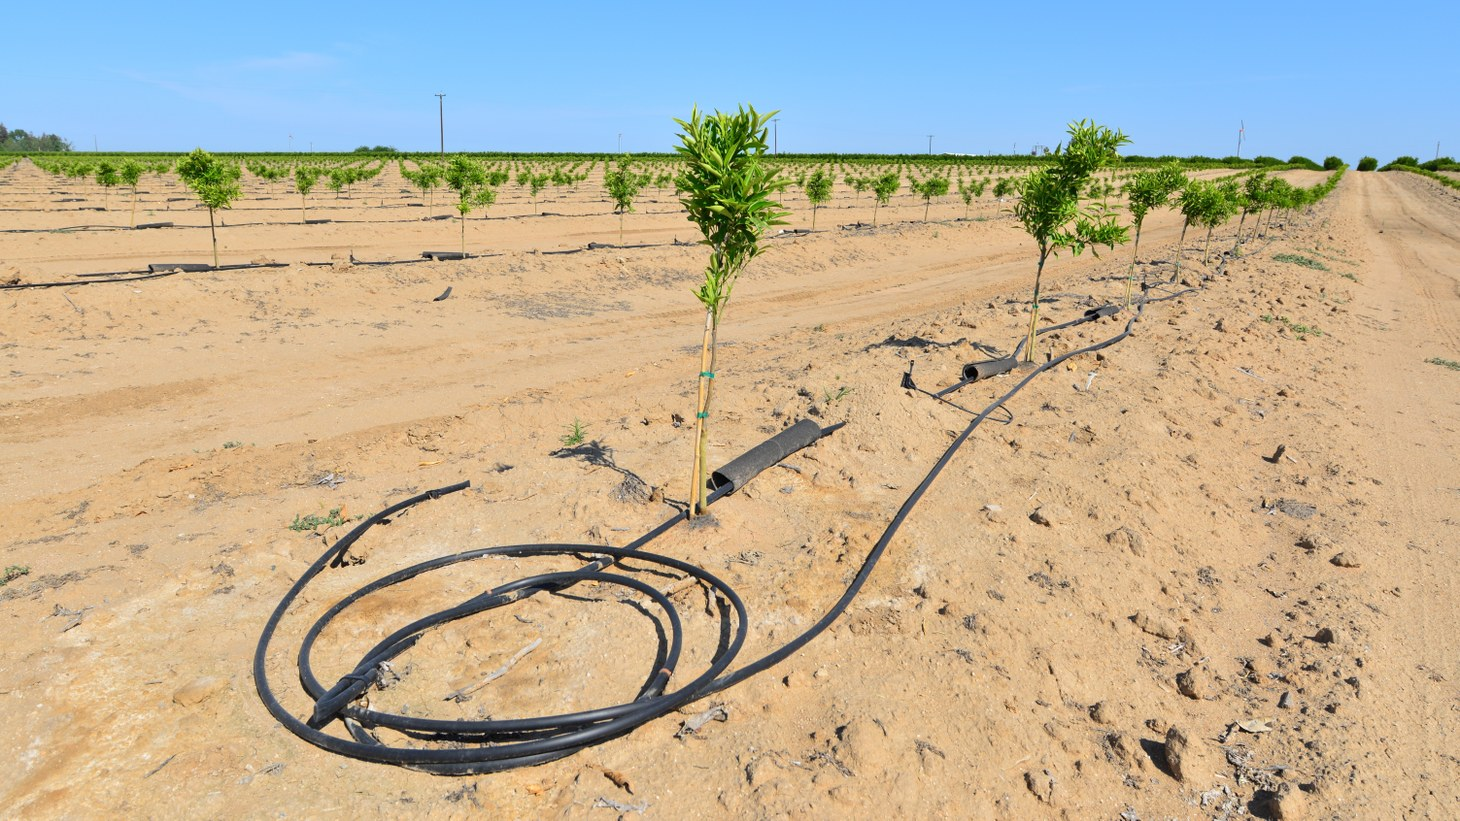 Newly planted almond trees on a San Joaquin Valley farm are watered with a drip irrigation system in a time of drought in California.